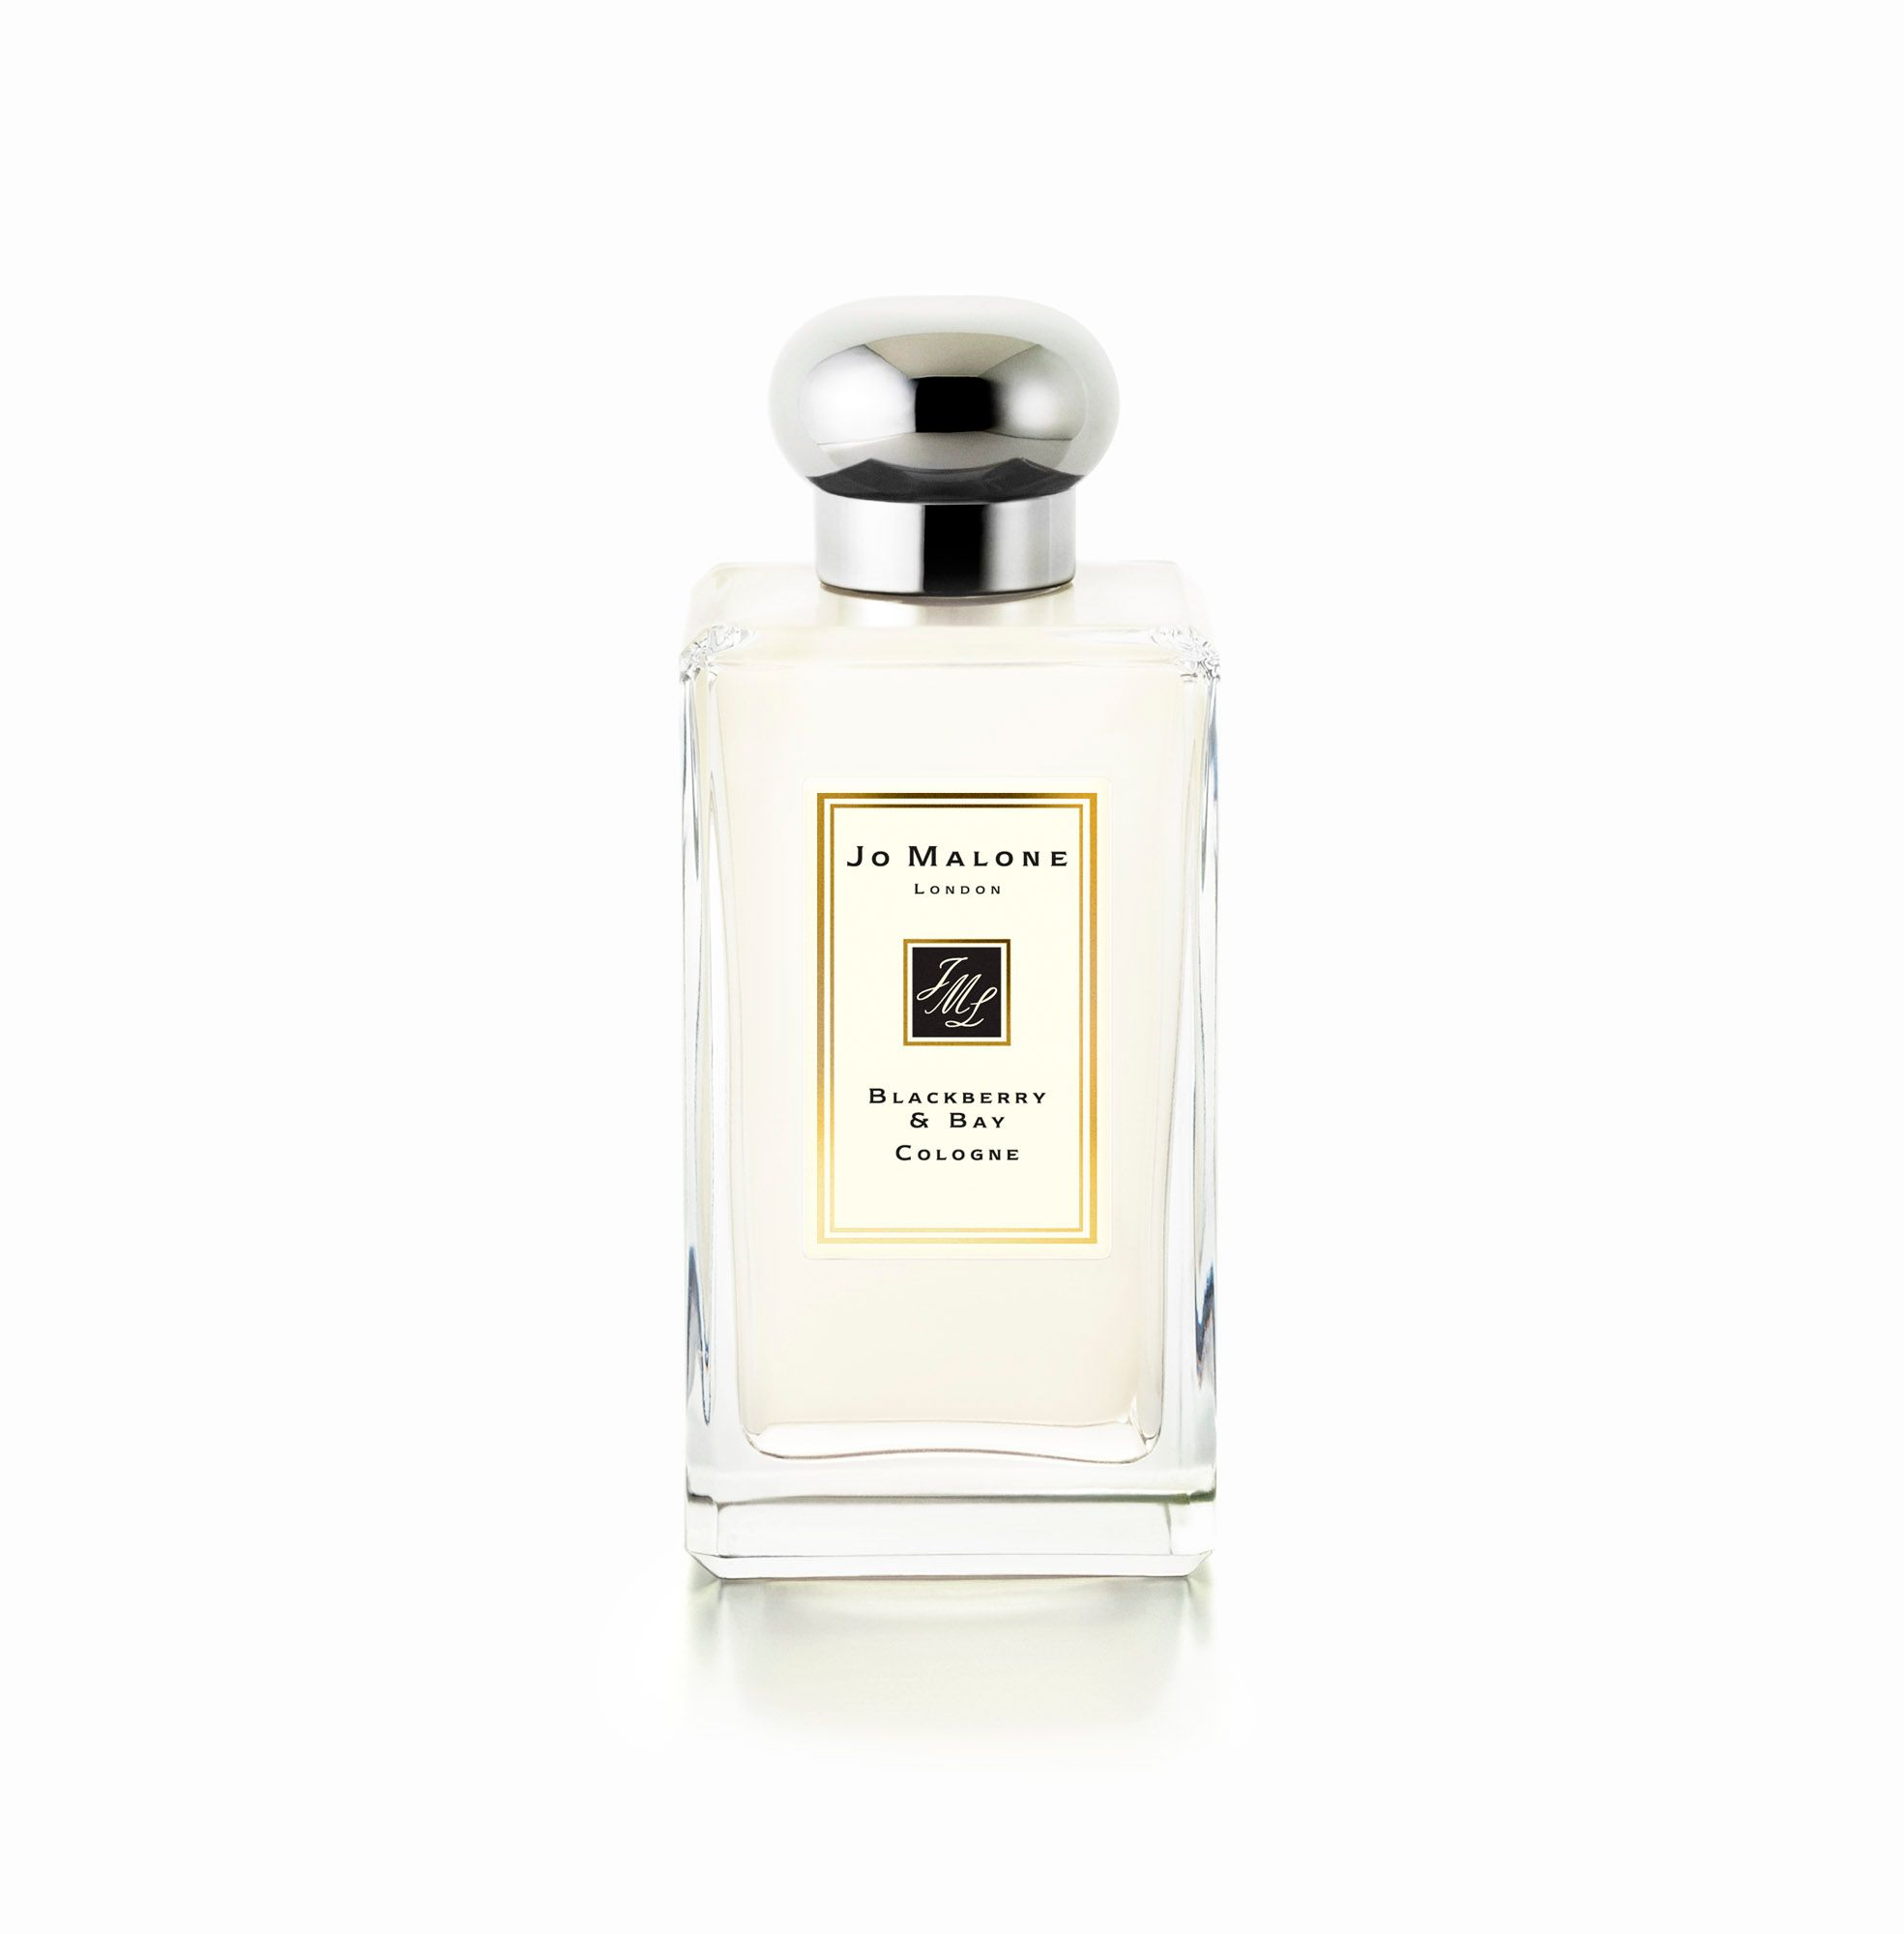 Blackberry & Bay Cologne 100ml